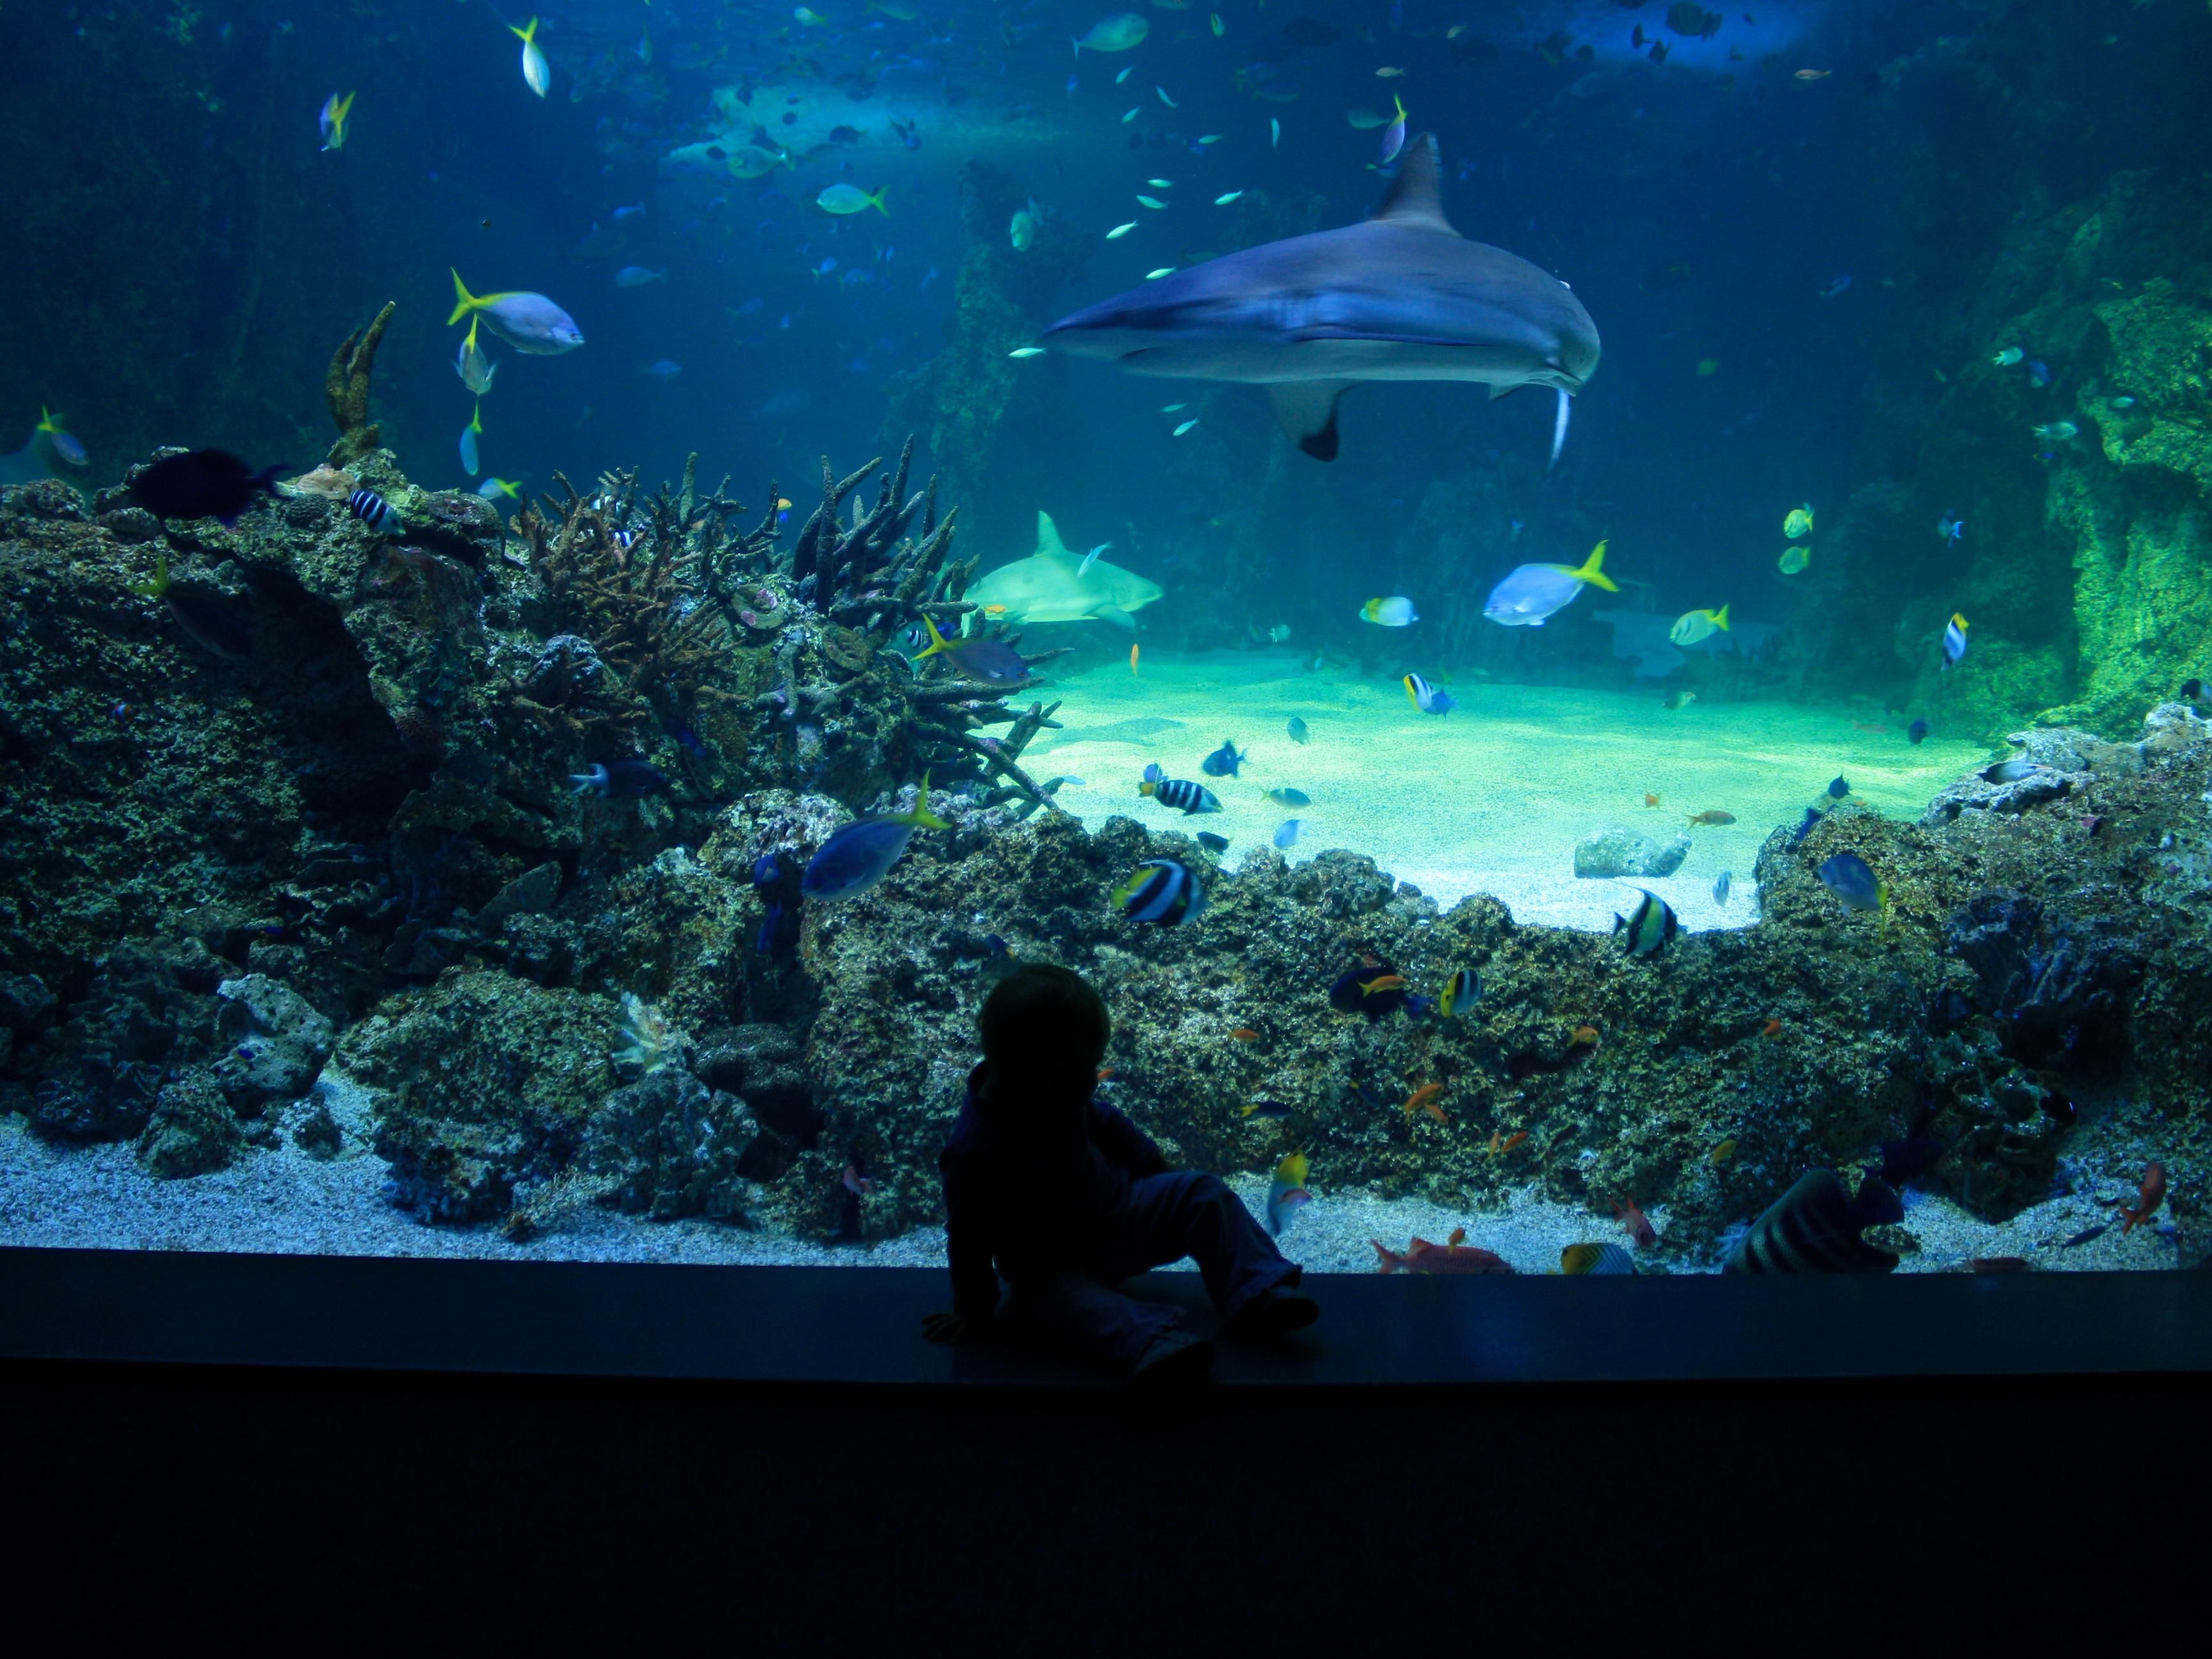 Sydney Aquarium, Darling Harbour